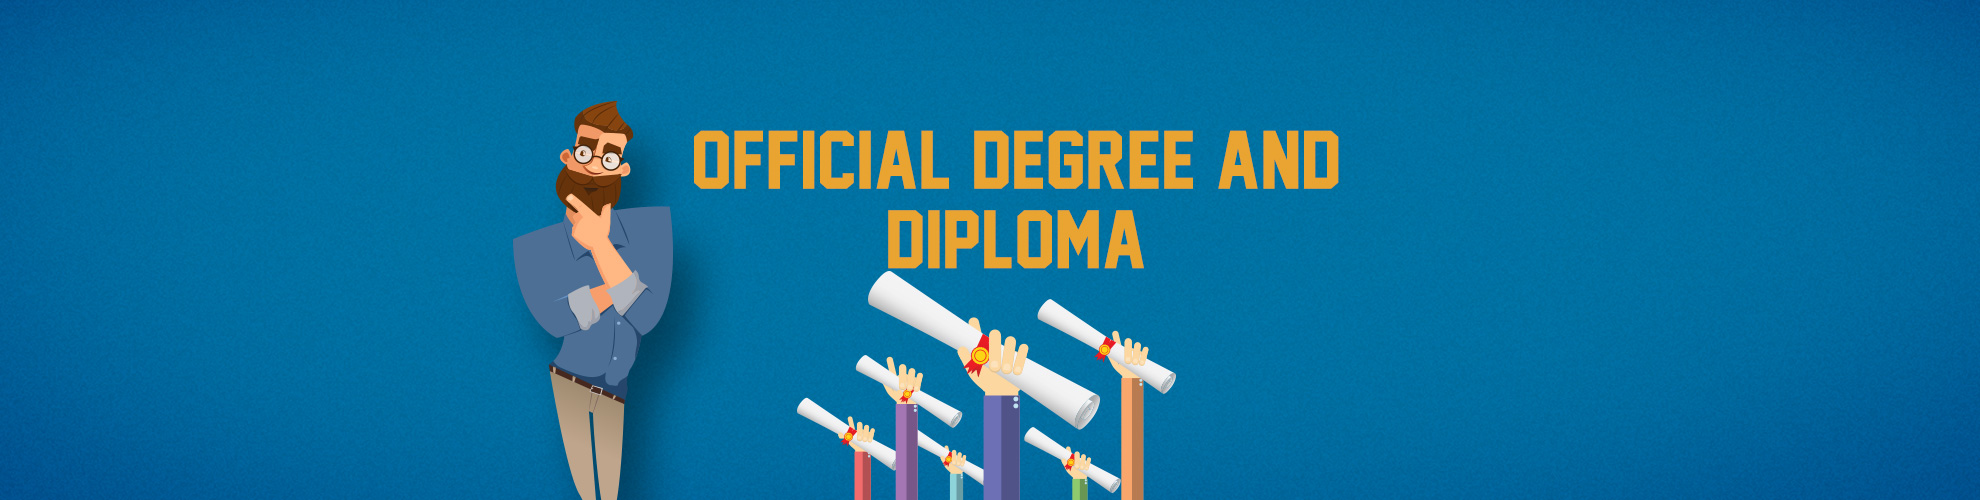 Official Degree And Diploma